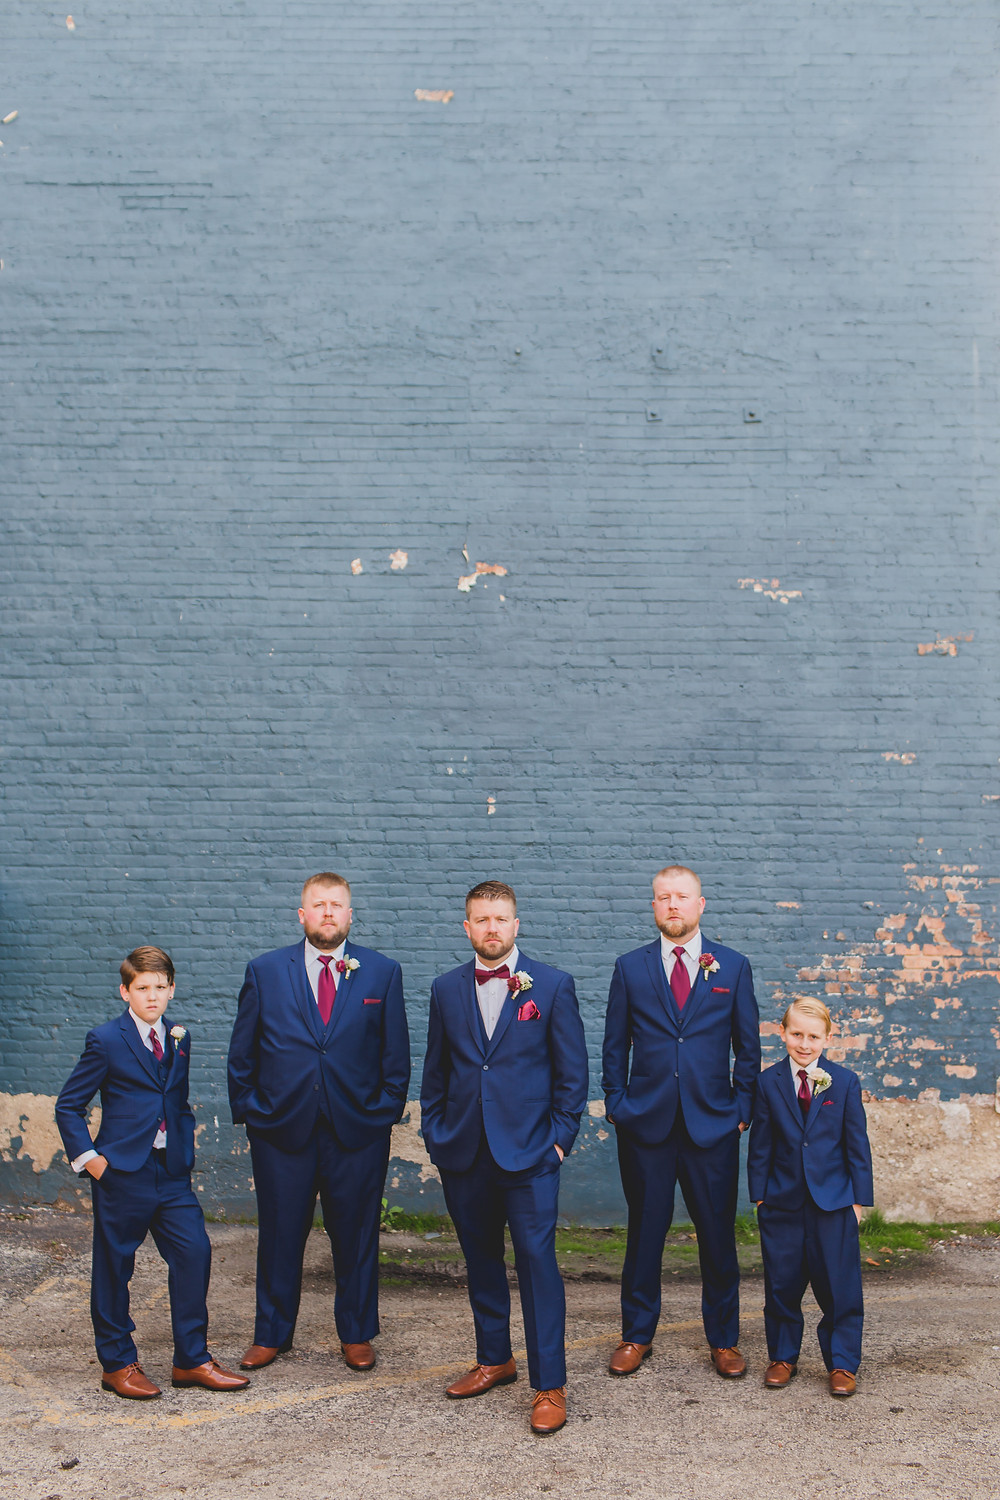 Industrial groomsmen wedding photos